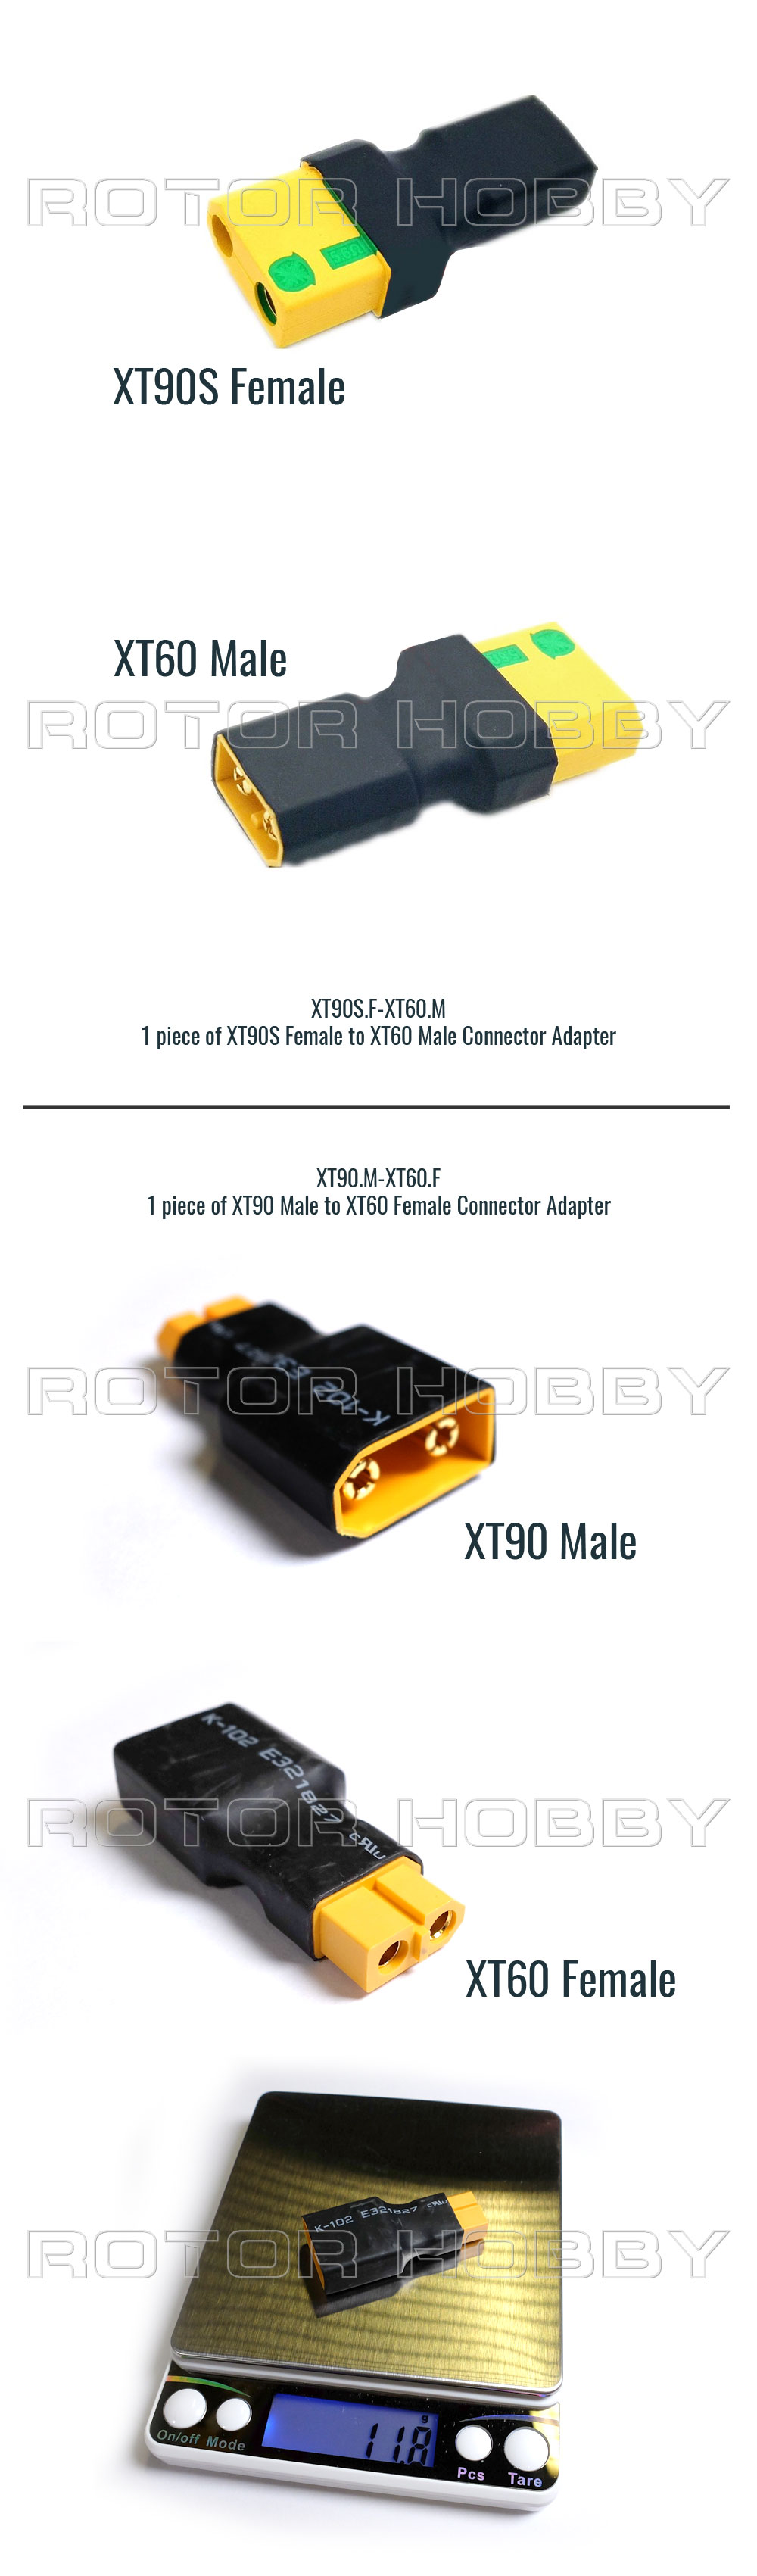 XT90 to XT60 connector adapter